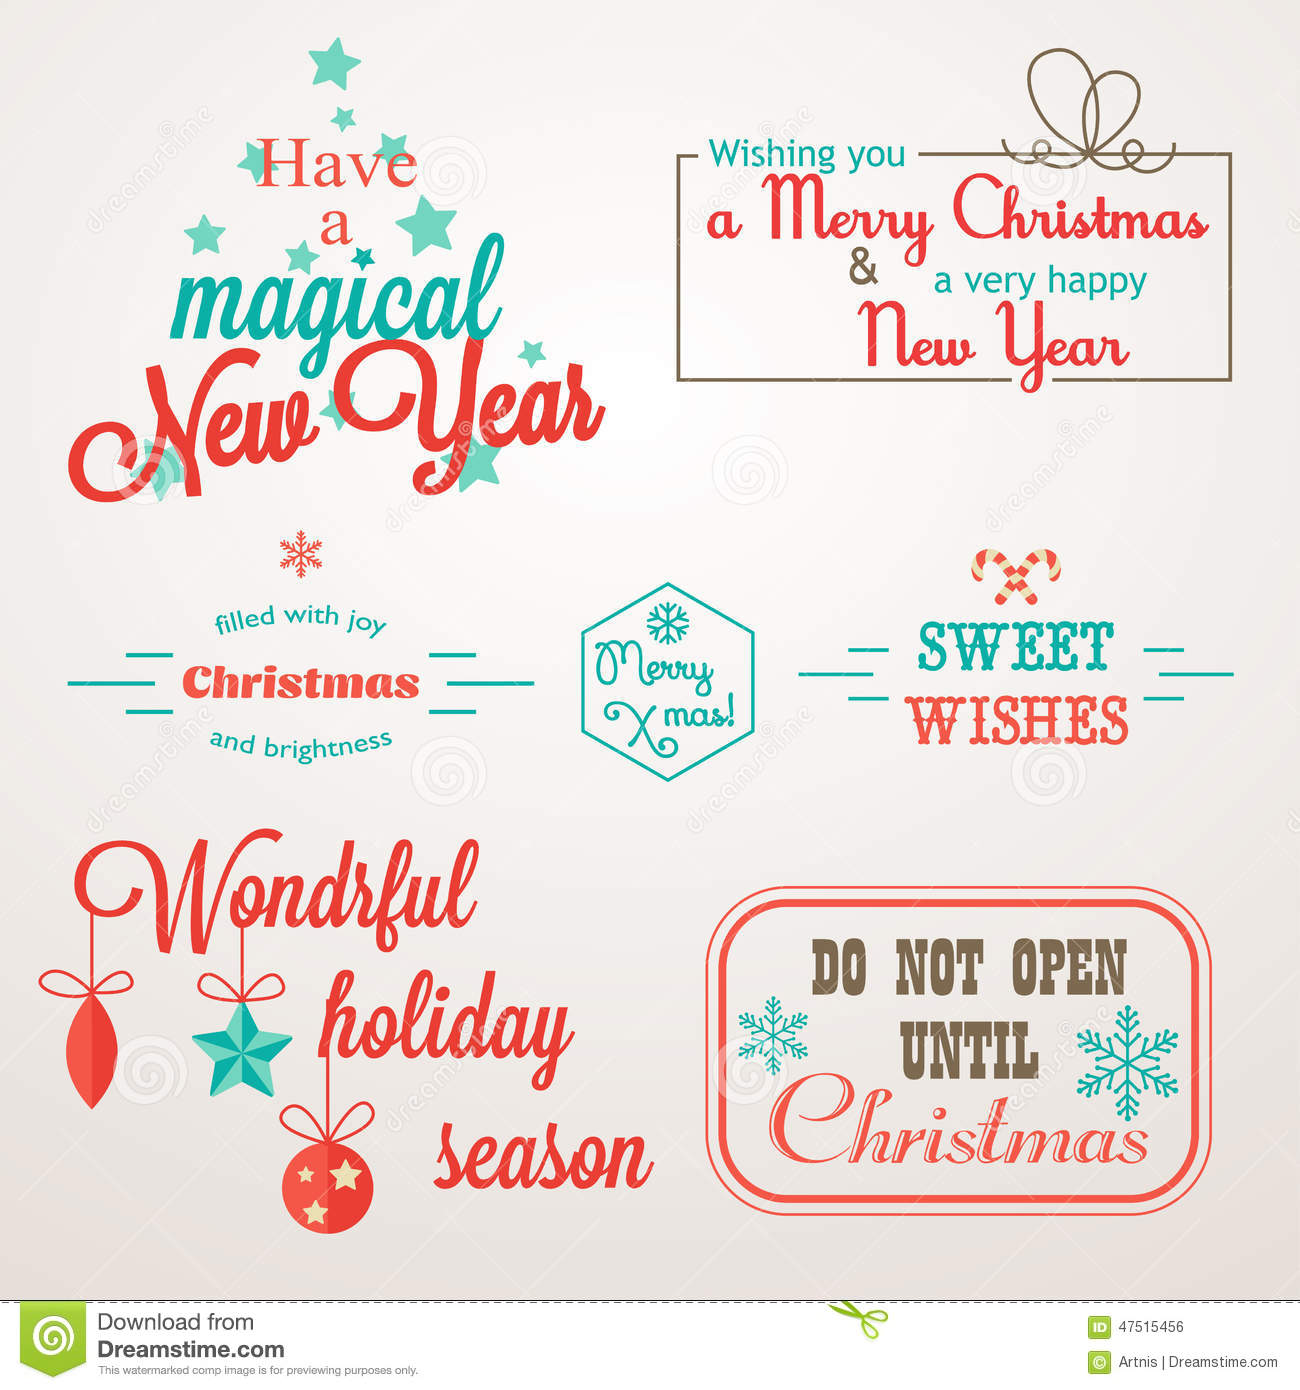 New year greetings phrases merry christmas and happy new year 2018 new year greetings phrases m4hsunfo